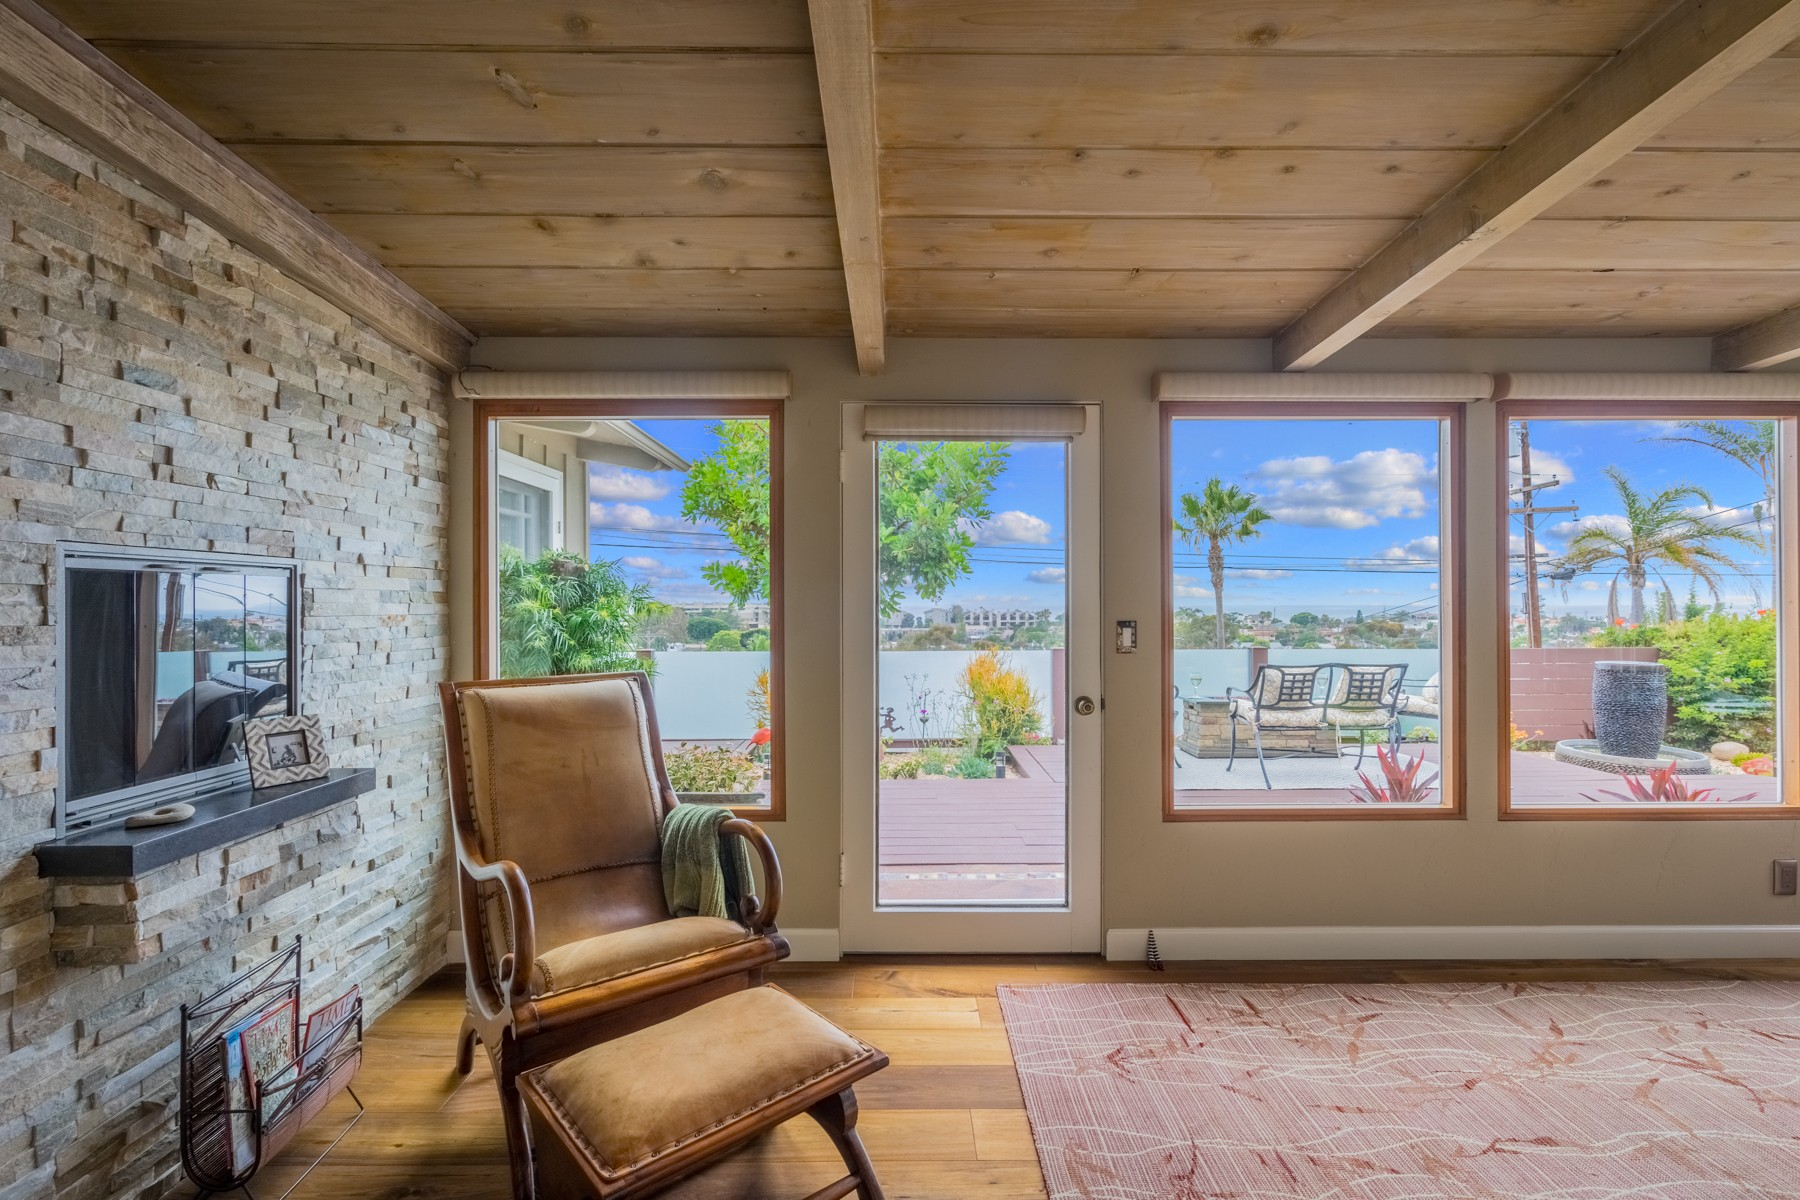 Additional photo for property listing at 47 Briggs Street  Encinitas, California 92024 United States